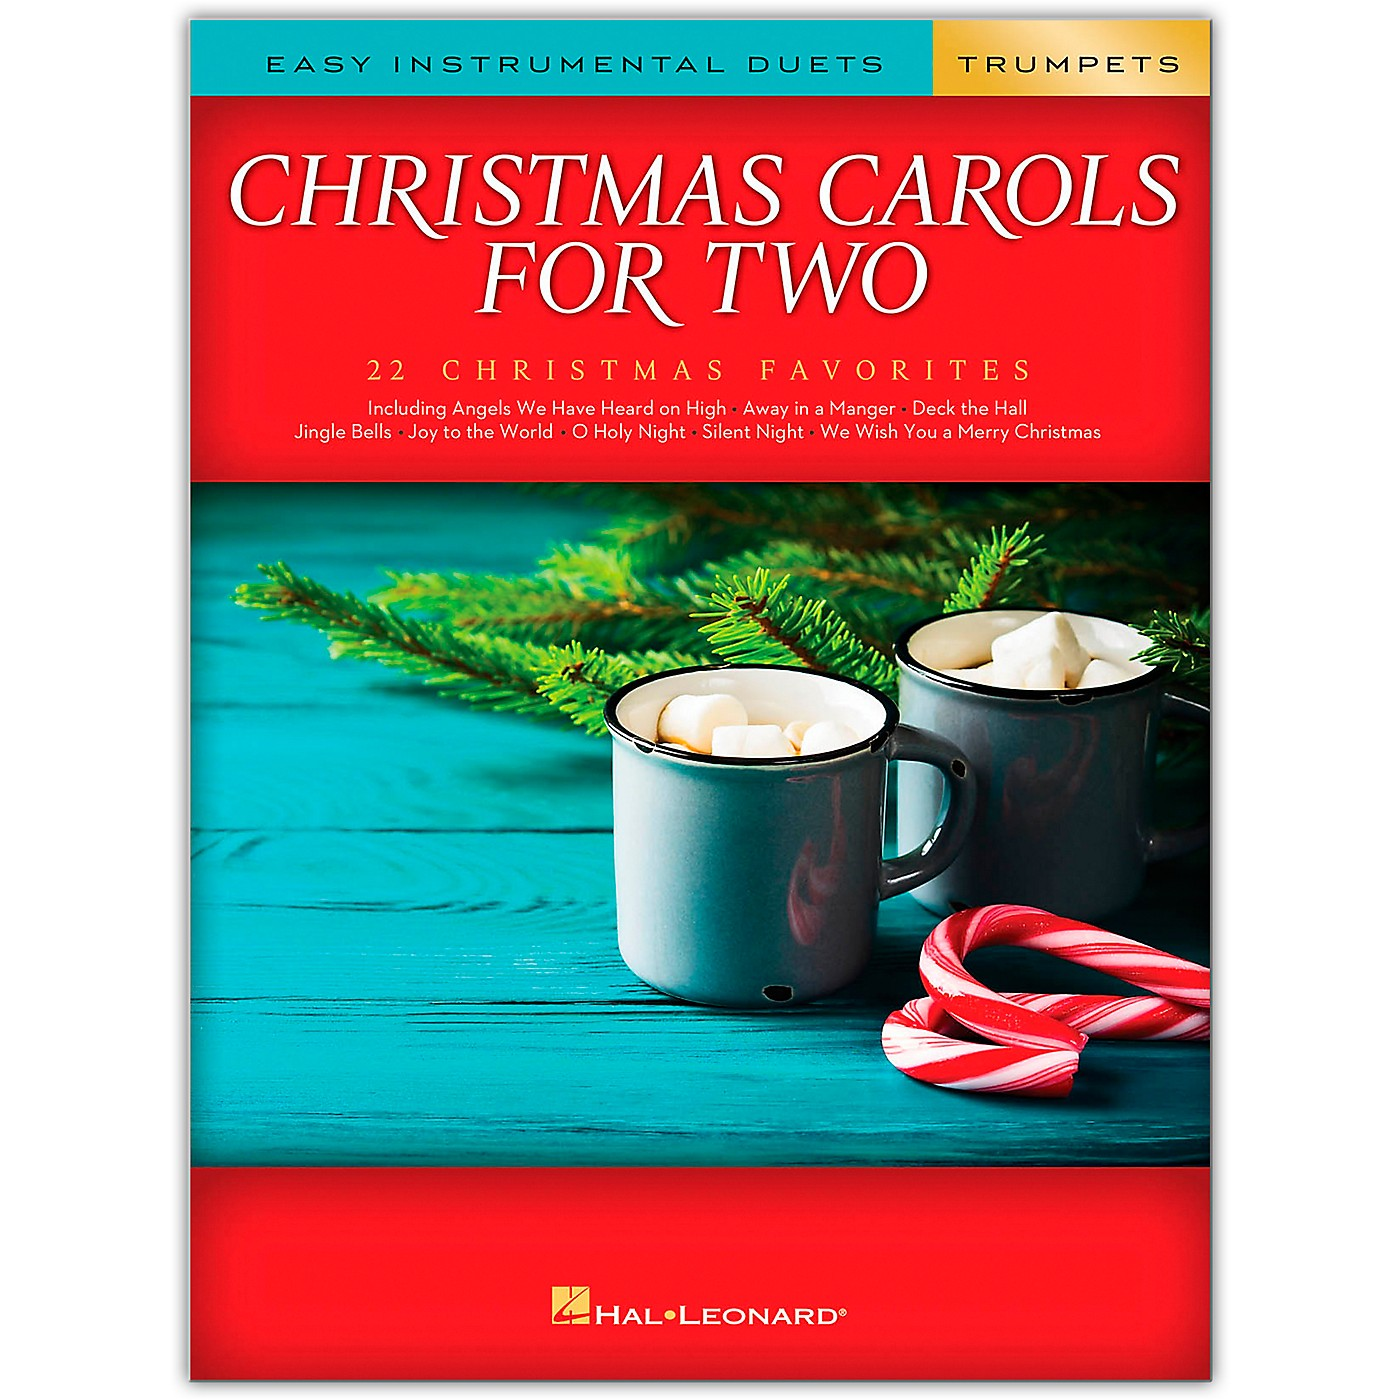 Hal Leonard Christmas Carols for Two Trumpets (Easy Instrumental Duets) Songbook thumbnail